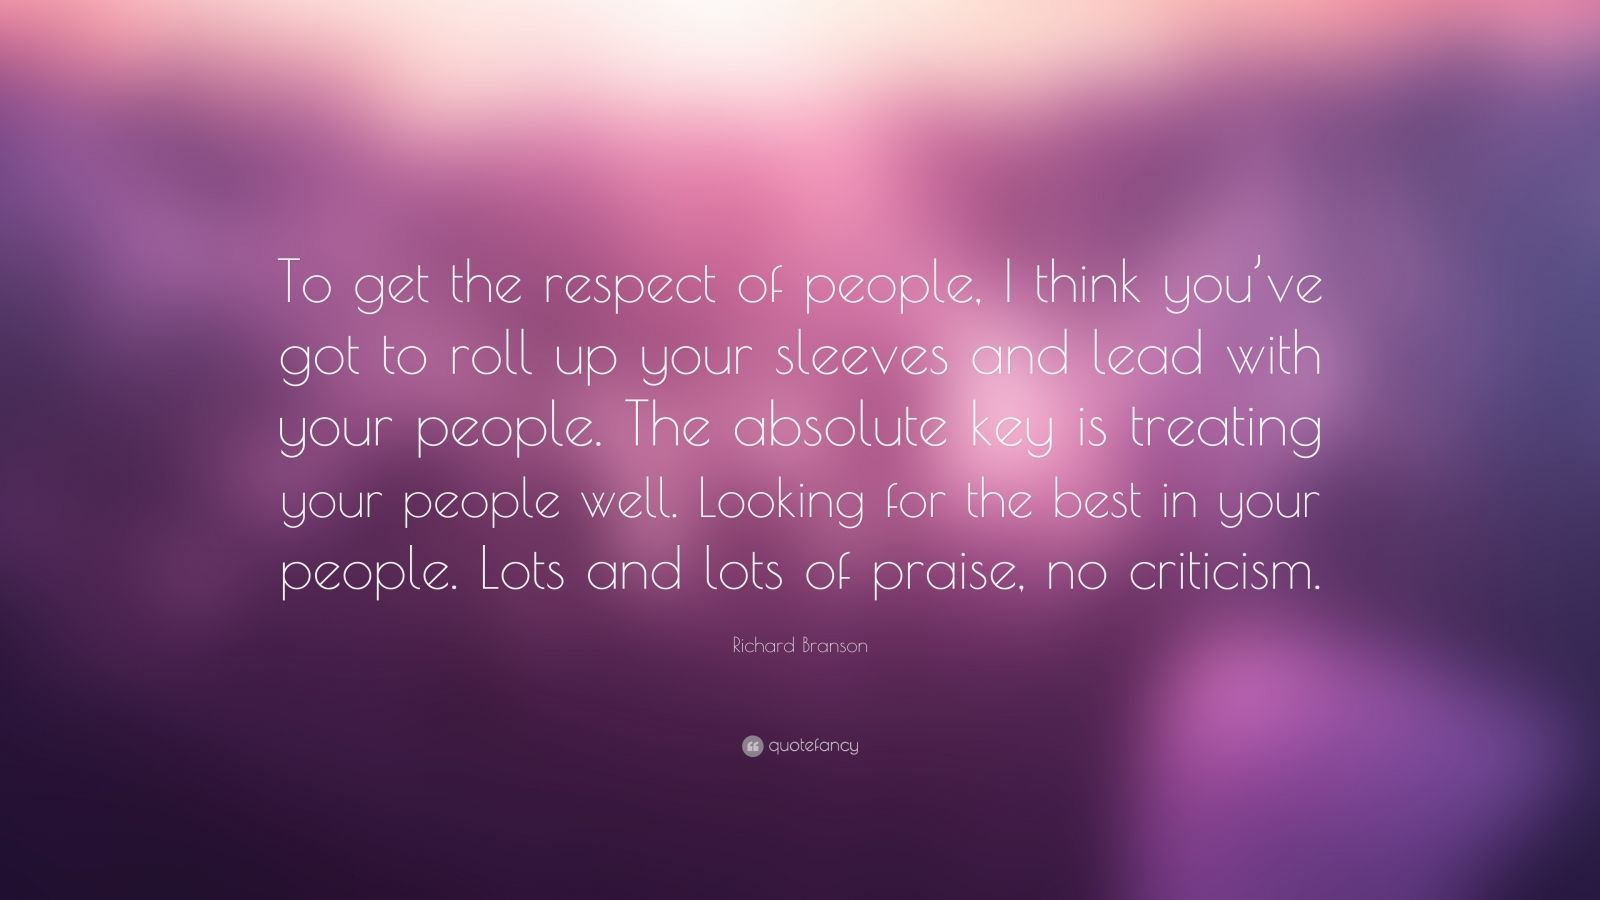 """Richard Branson Quote: """"To get the respect of people, I think you've got to roll up your sleeves and lead with your people. The absolute key is treating your people well. Looking for the best in your people. Lots and lots of praise, no criticism."""""""